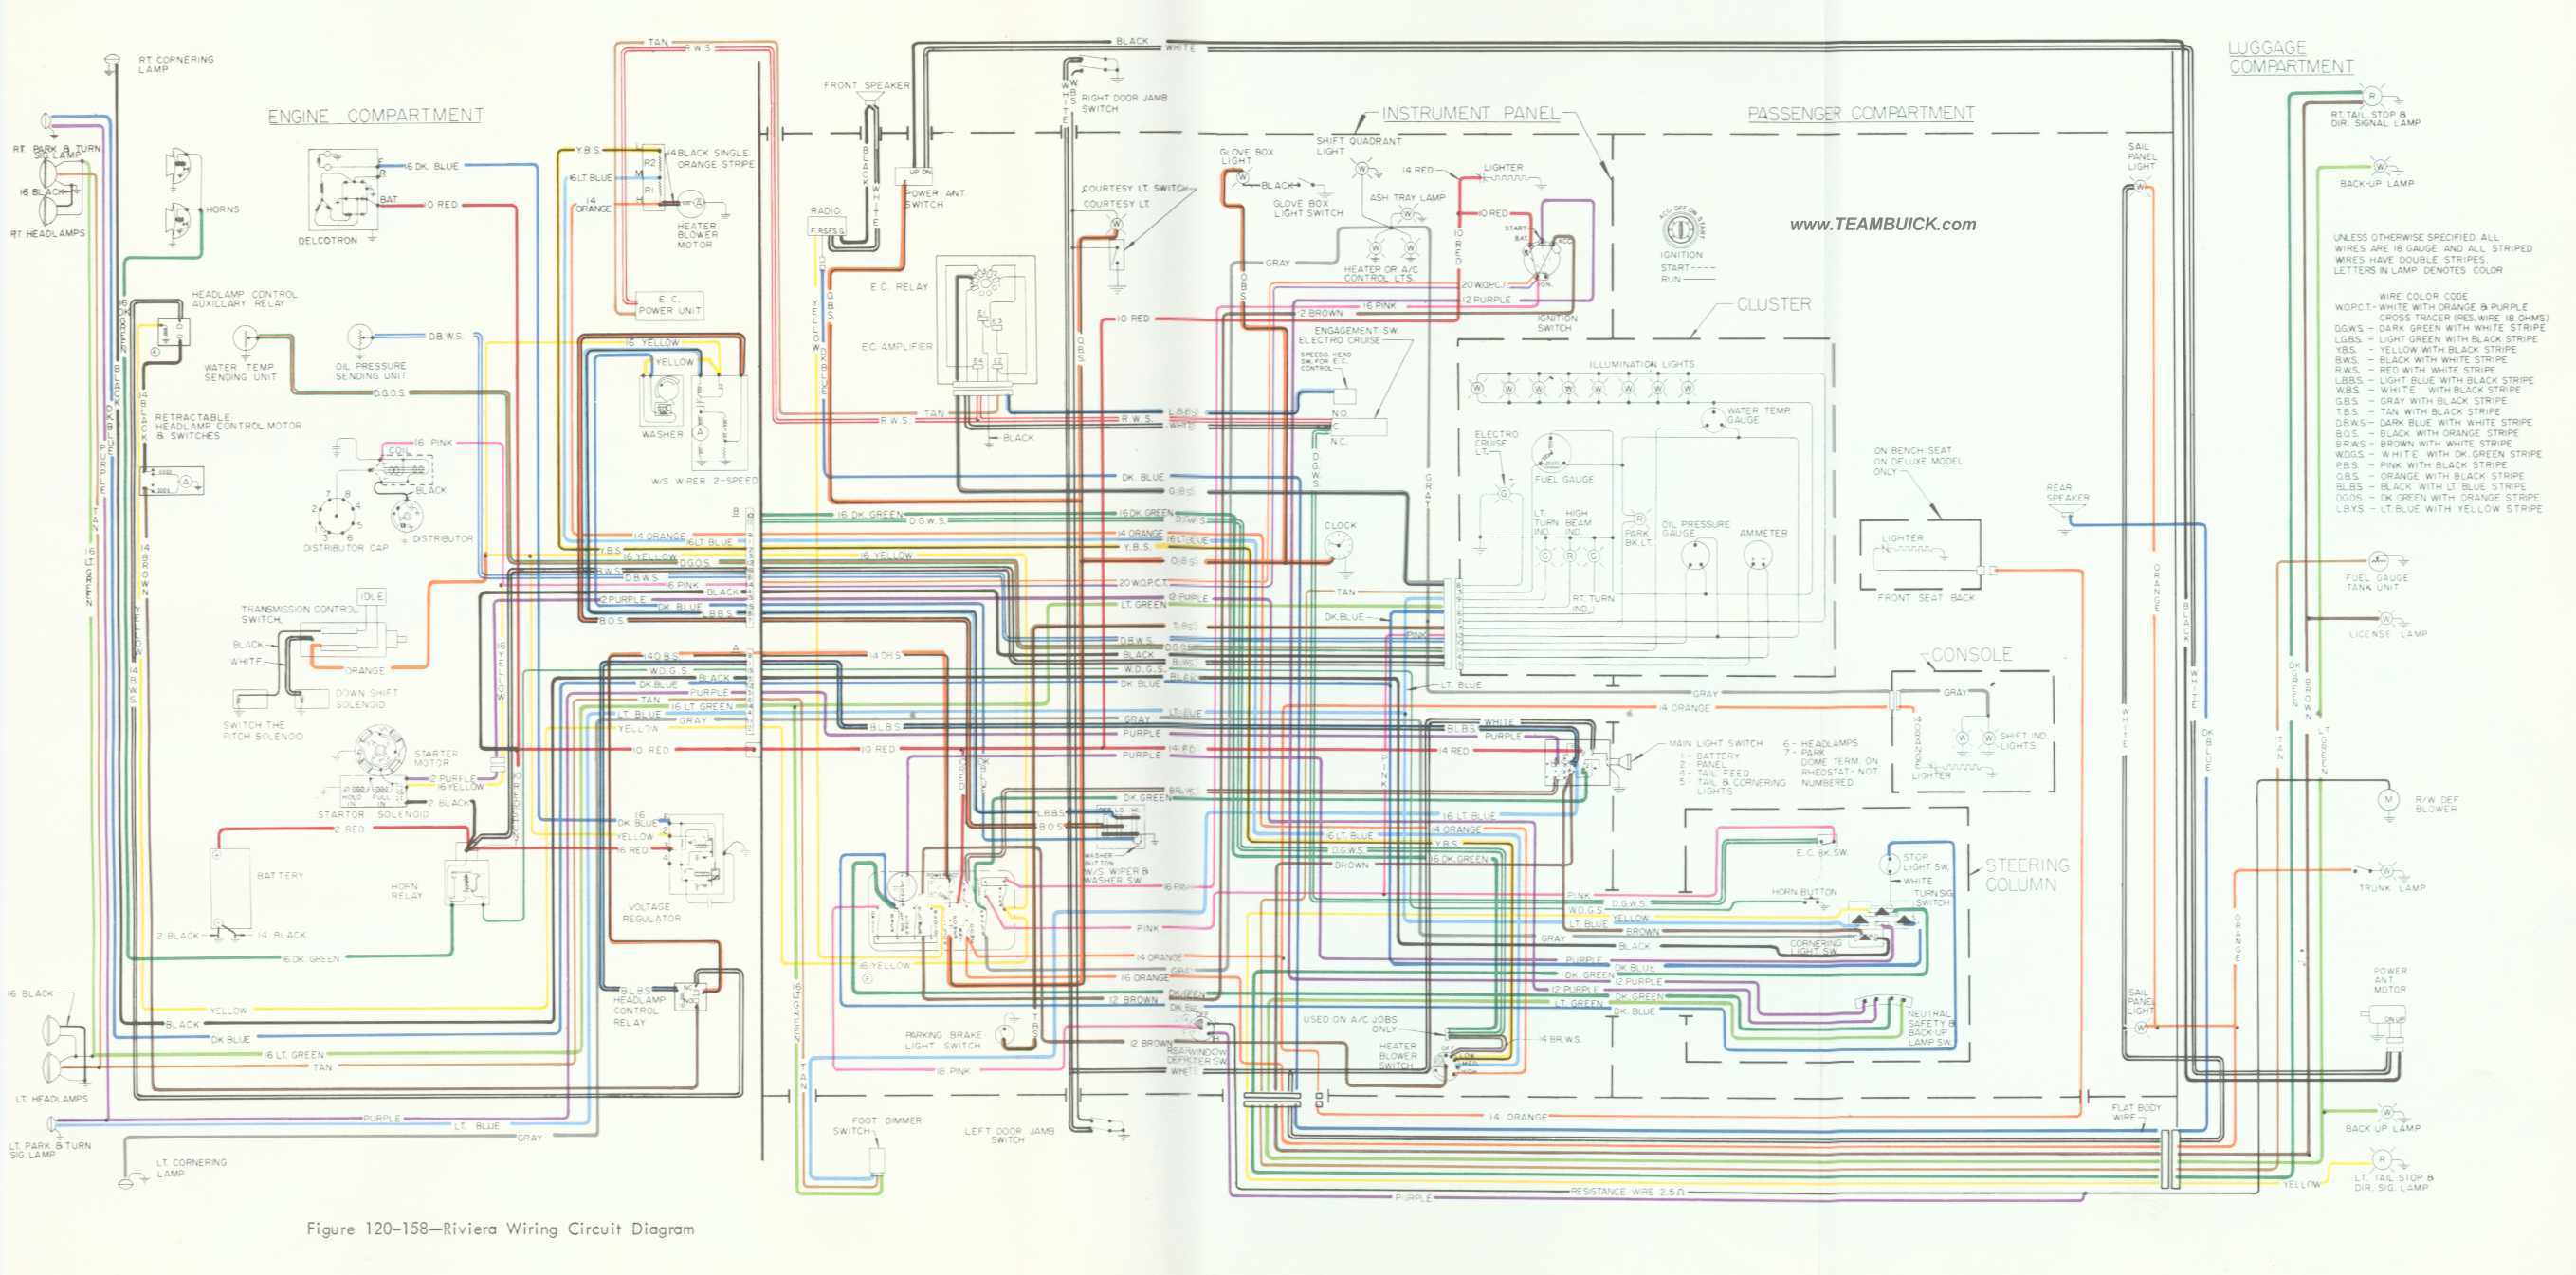 1981 Buick Riviera Schematics Charging System Wiring Diagram Will 1983 Regal 1966 Simple Rh David Huggett Co Uk 1964 1985